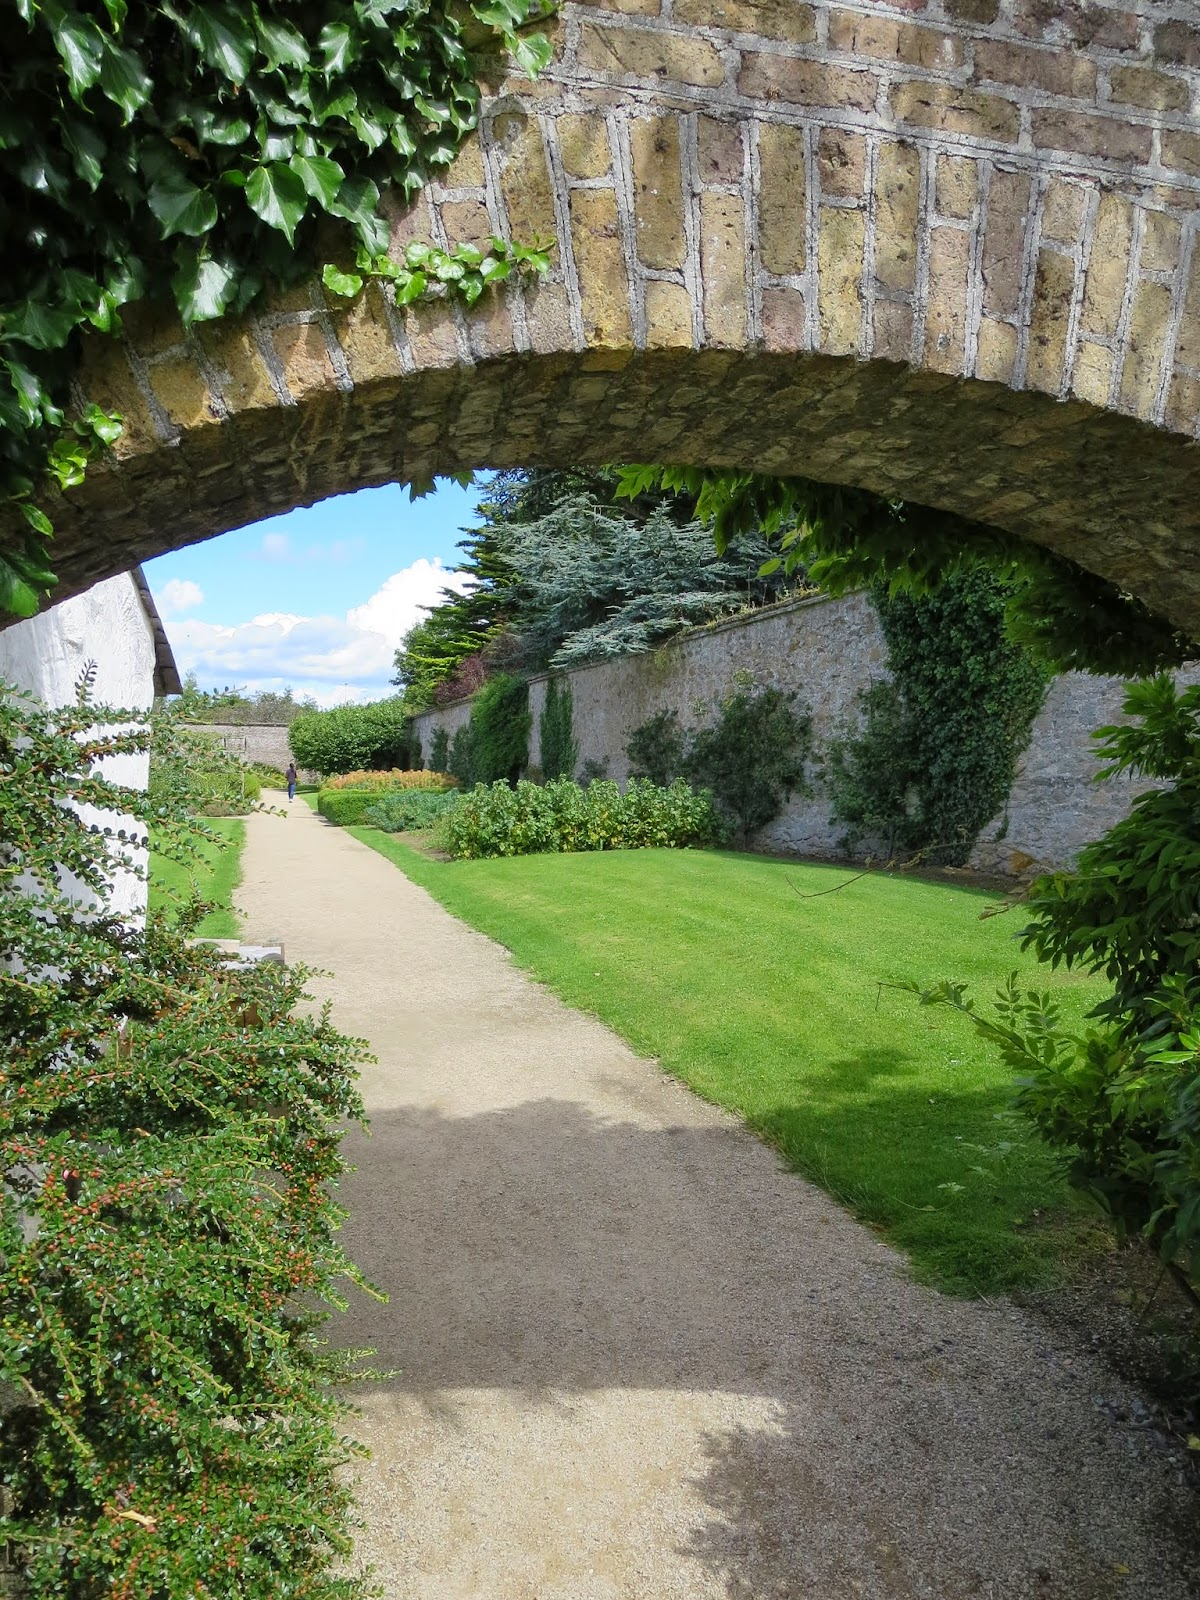 Arch inside the walled garden at Marlay Park in Dublin